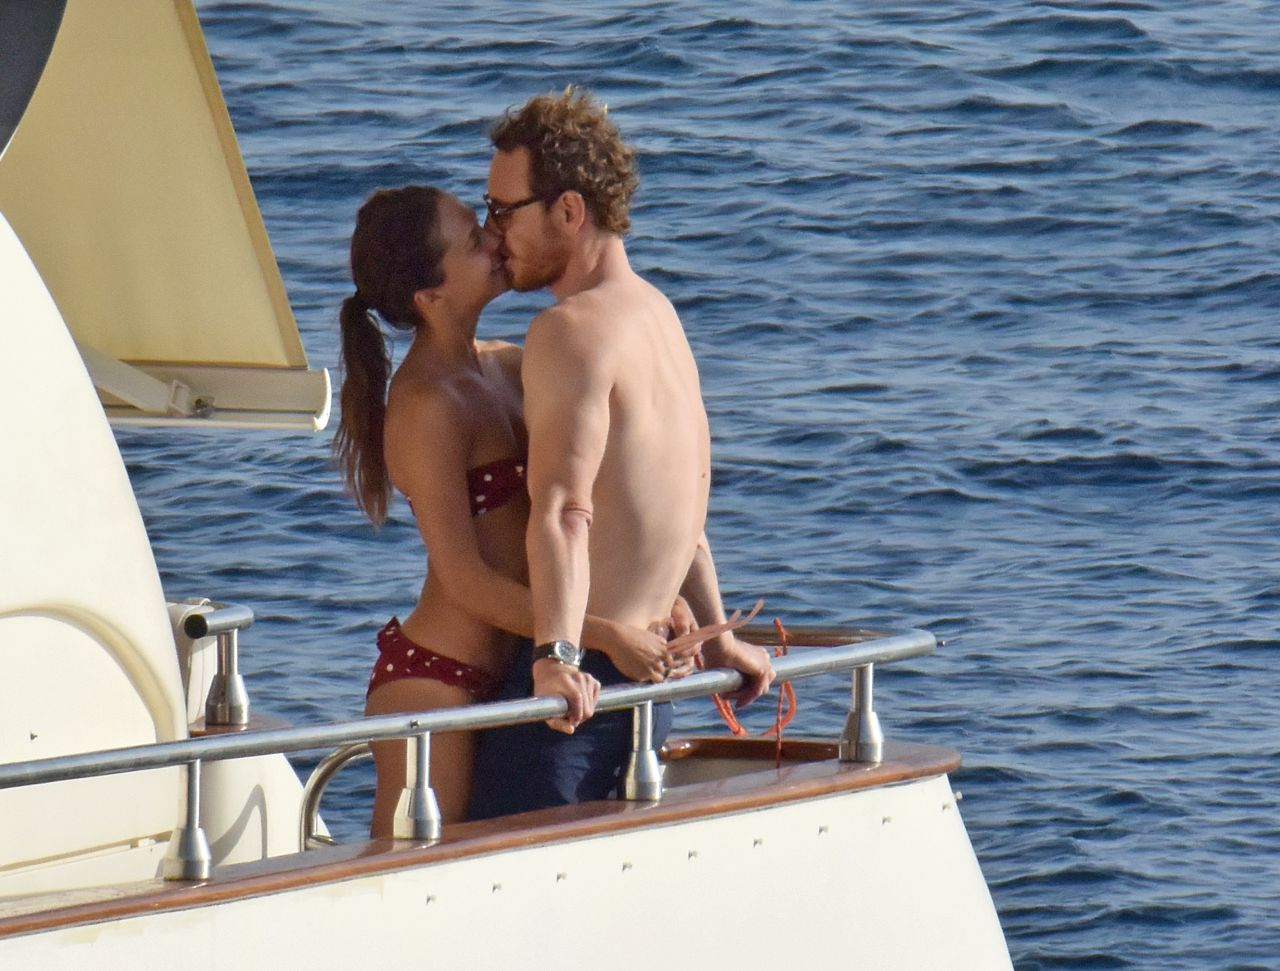 EXCLUSIVE: Actors Alicia Vikander and Michael Fassbender on holidays in Formentera, on Wednesday 5th July, 2017. <P> Pictured: Alicia Vikander and Michael Fassbender <B>Ref: SPL1533416  050717   EXCLUSIVE</B><BR/> Picture by: Splash News<BR/> </P><P> <B>Splash News and Pictures</B><BR/> Los Angeles:	310-821-2666<BR/> New York:	212-619-2666<BR/> London:	870-934-2666<BR/> photodesk@splashnews.com<BR/> </P>